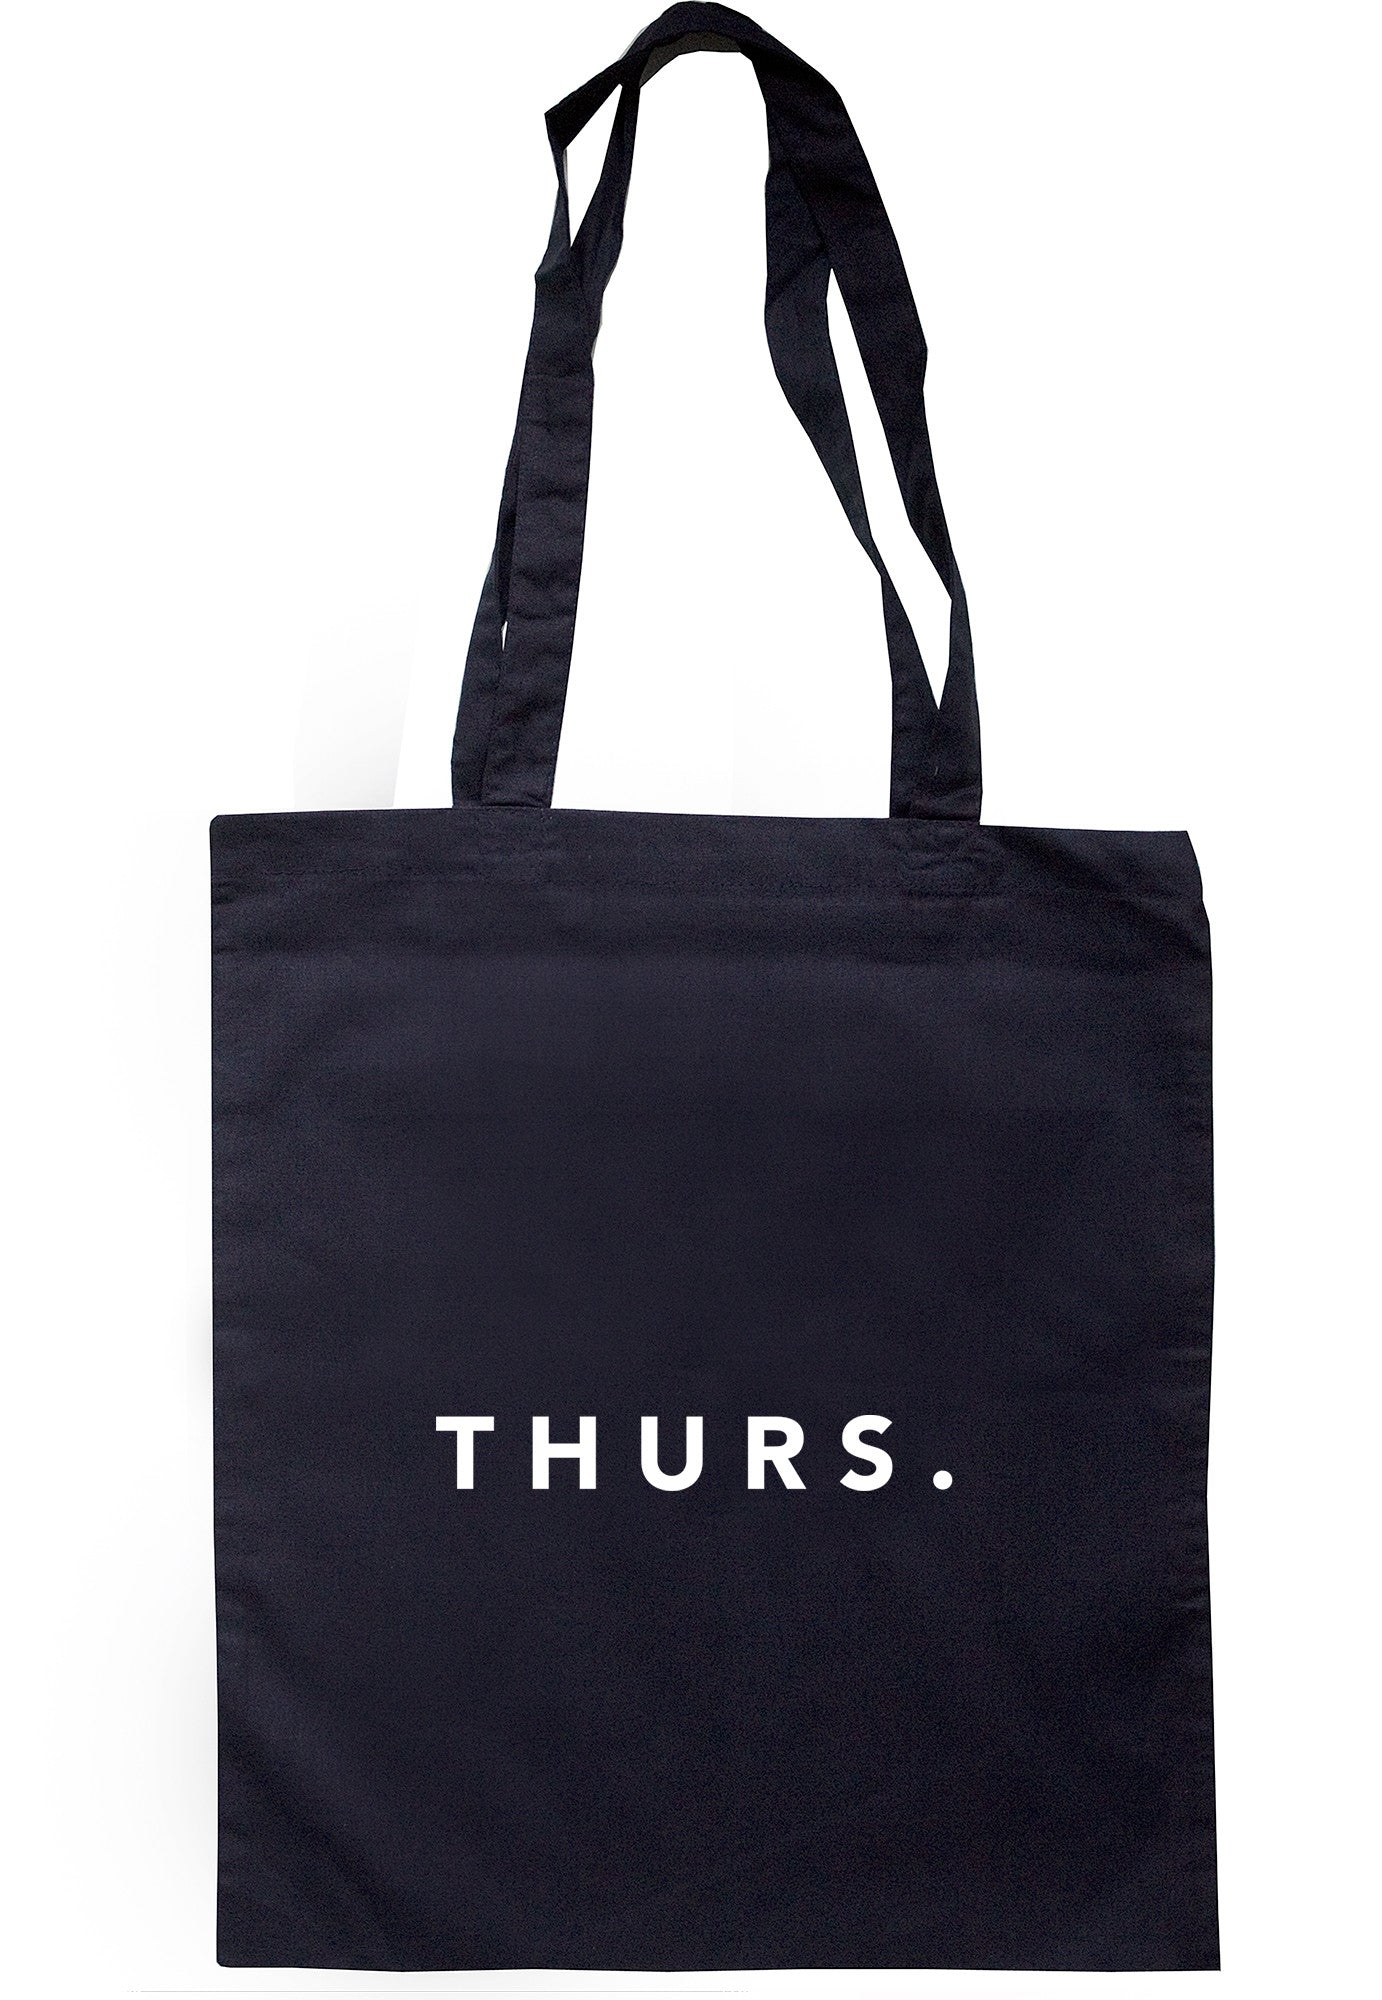 Thursday. Tote Bag TB0628 - Illustrated Identity Ltd.